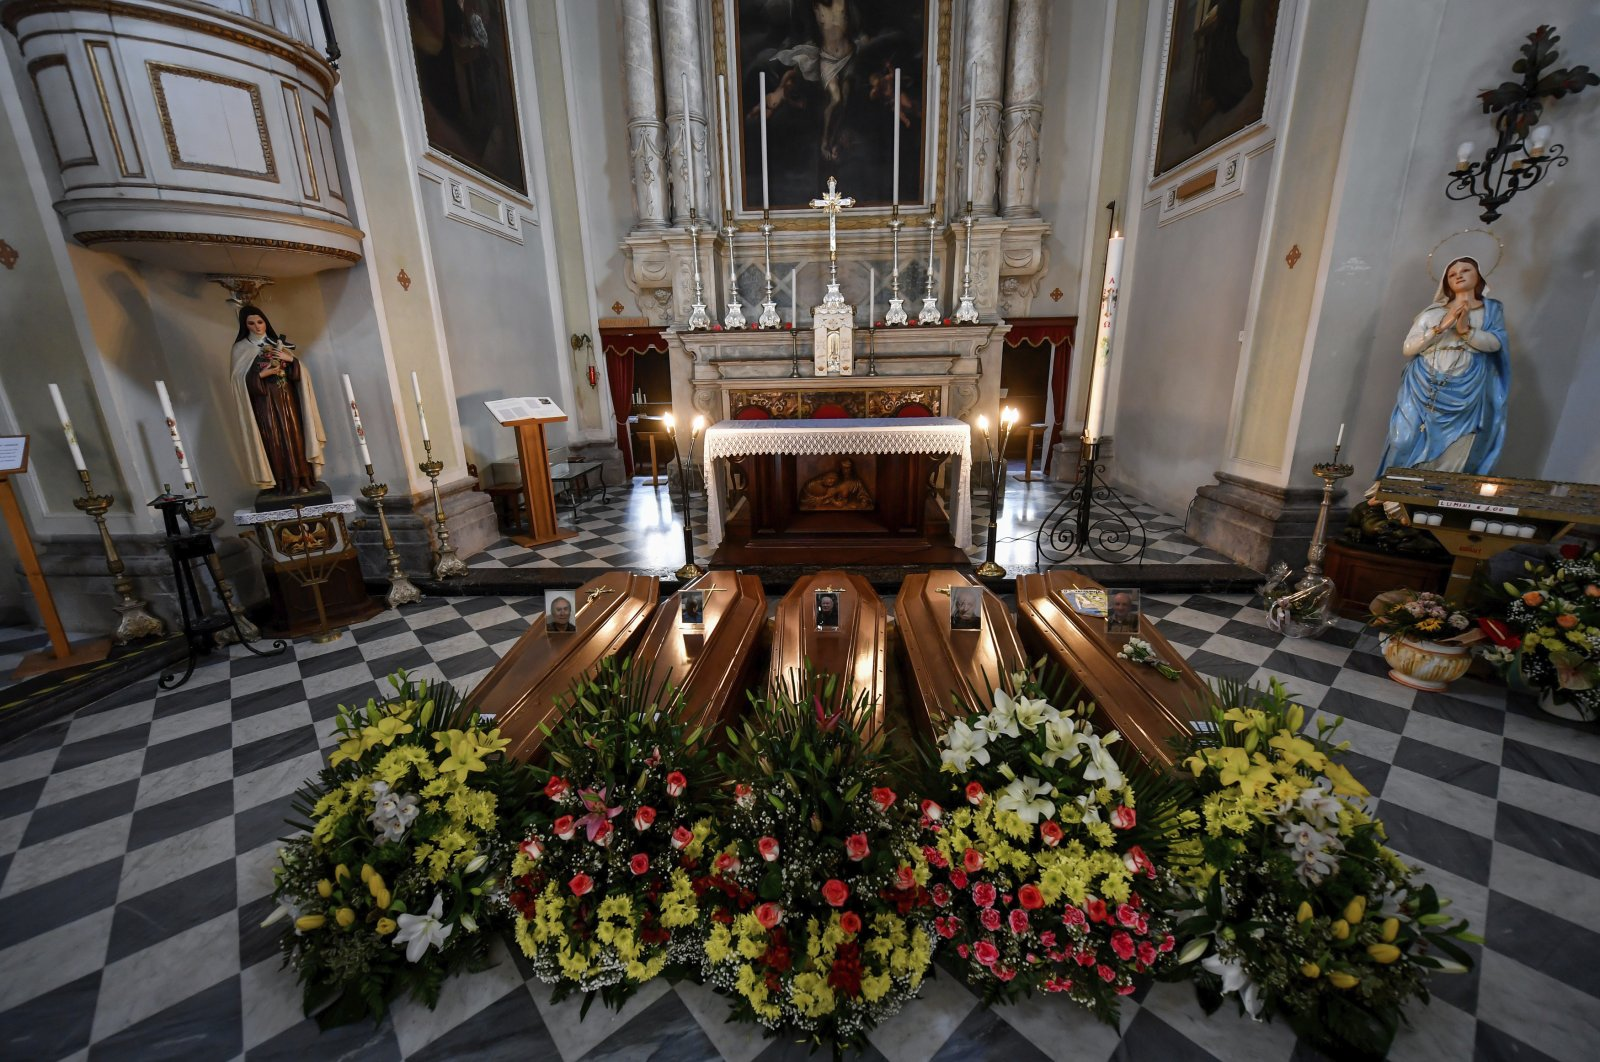 Coffins wait to be transported to cemetery, in the church of Serina, near Bergamo, Northern Italy, Saturday, March 21, 2020. (AP Photo)